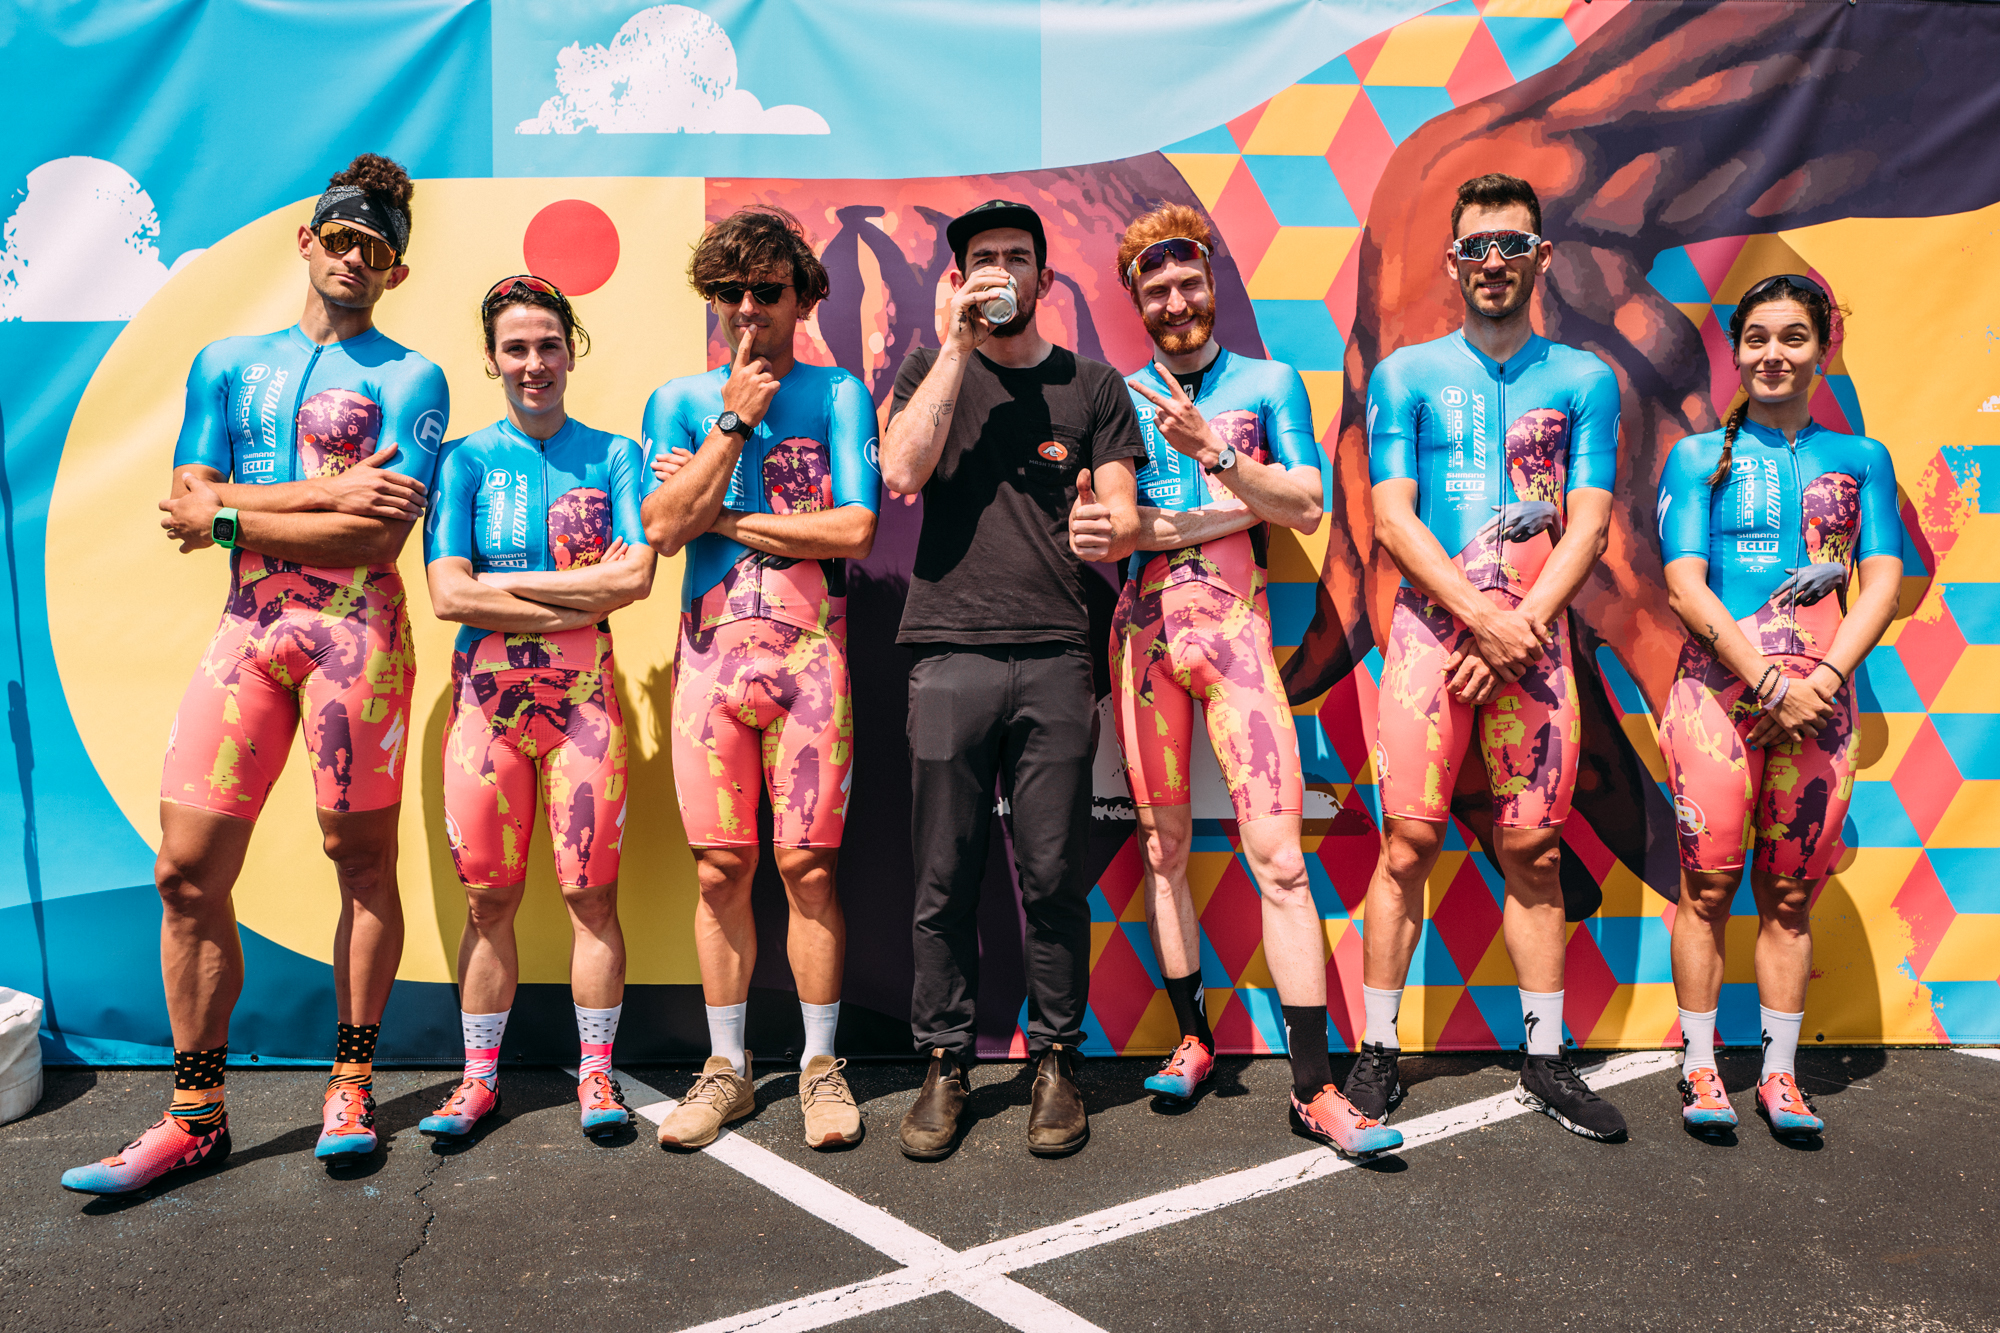 2018 - SPECIALIZED - ROCKET ESPRESSO   This team can do anything. They win the crowd regardless of winning the race. We have focused on rebuilding the sub $2000usd price point focused on art & culture and go-fast, anyone is welcome racing.